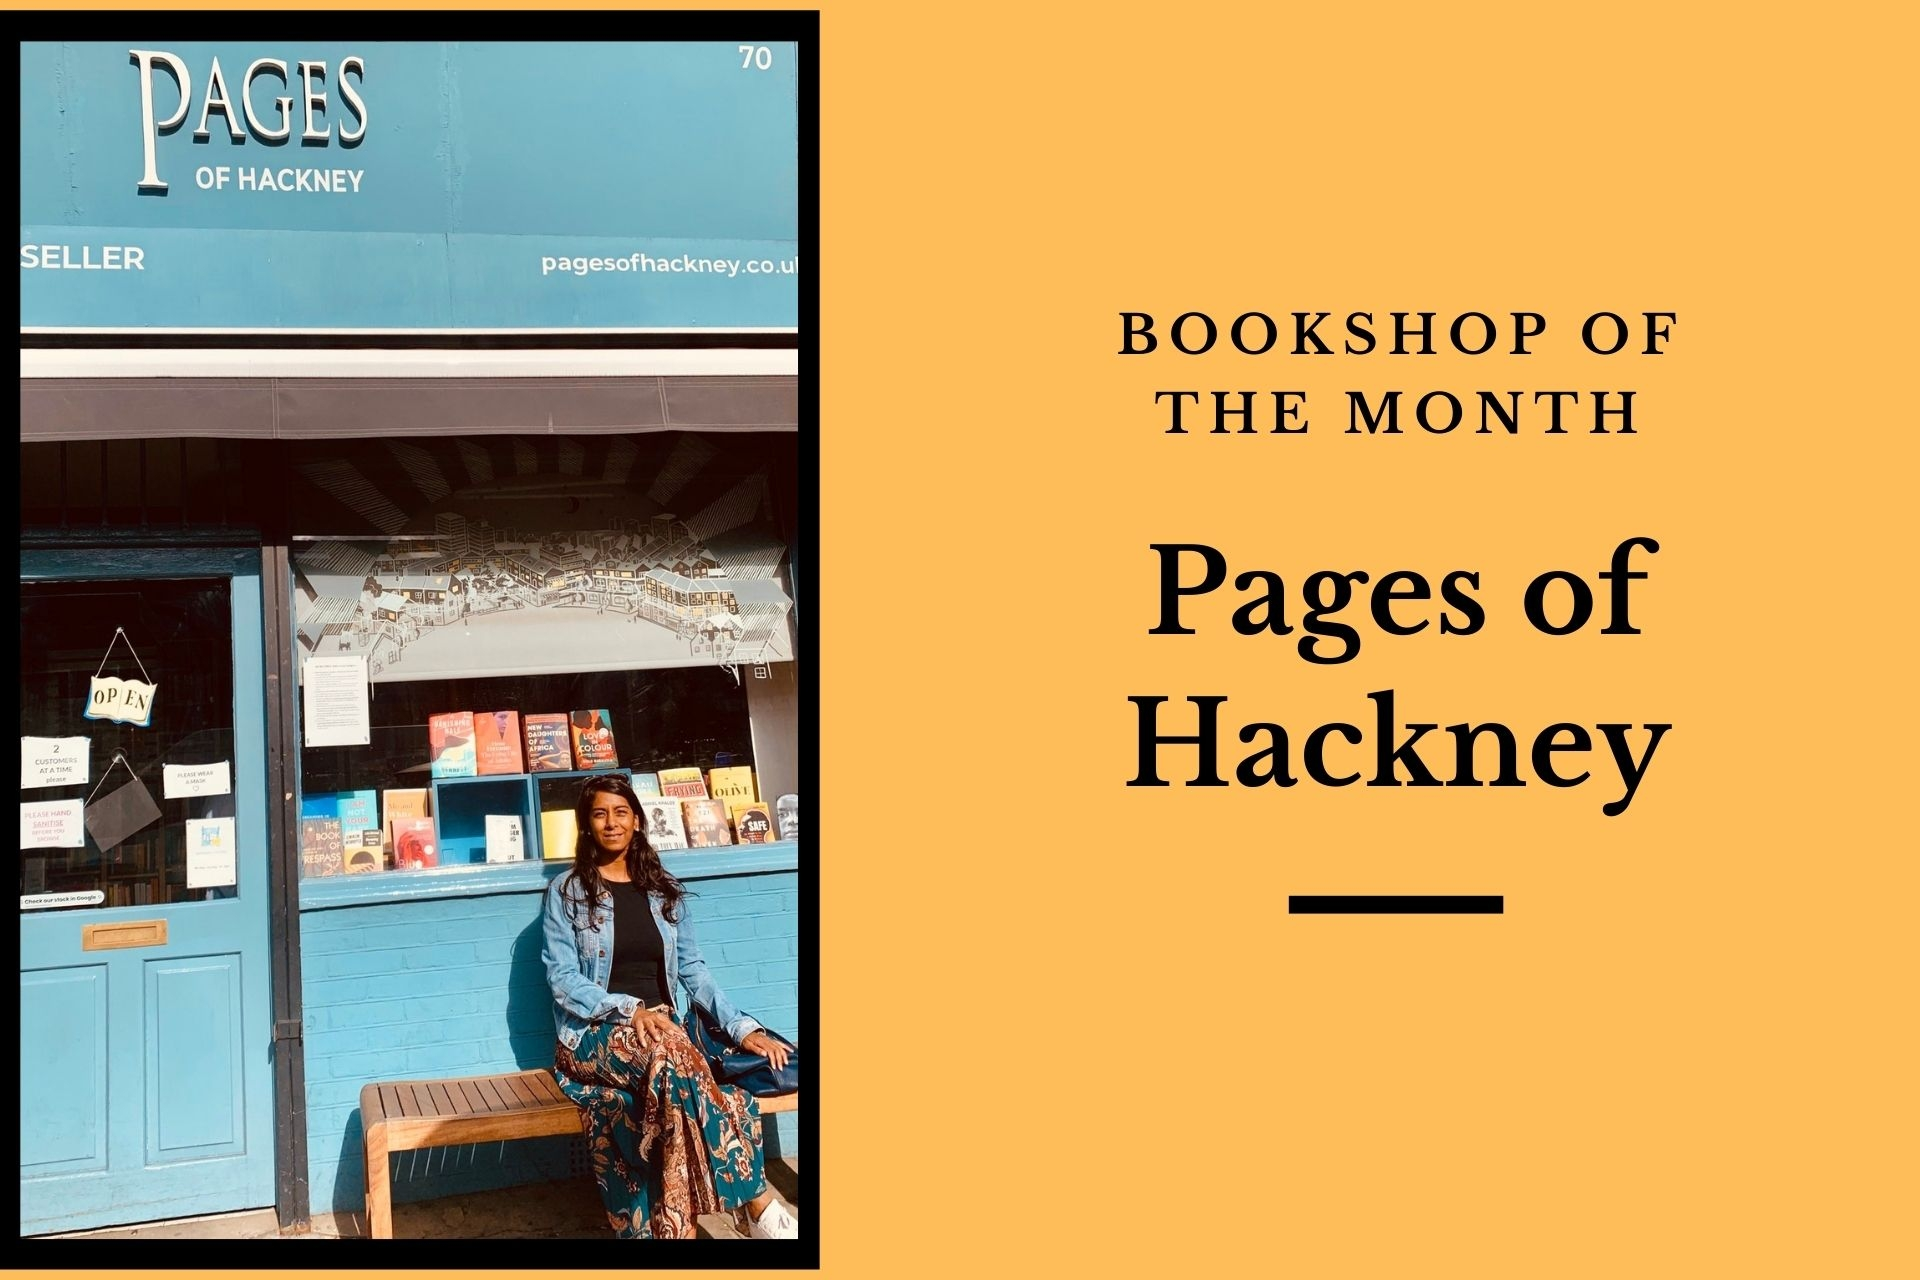 August Bookshop of the Month: Pages of Hackney